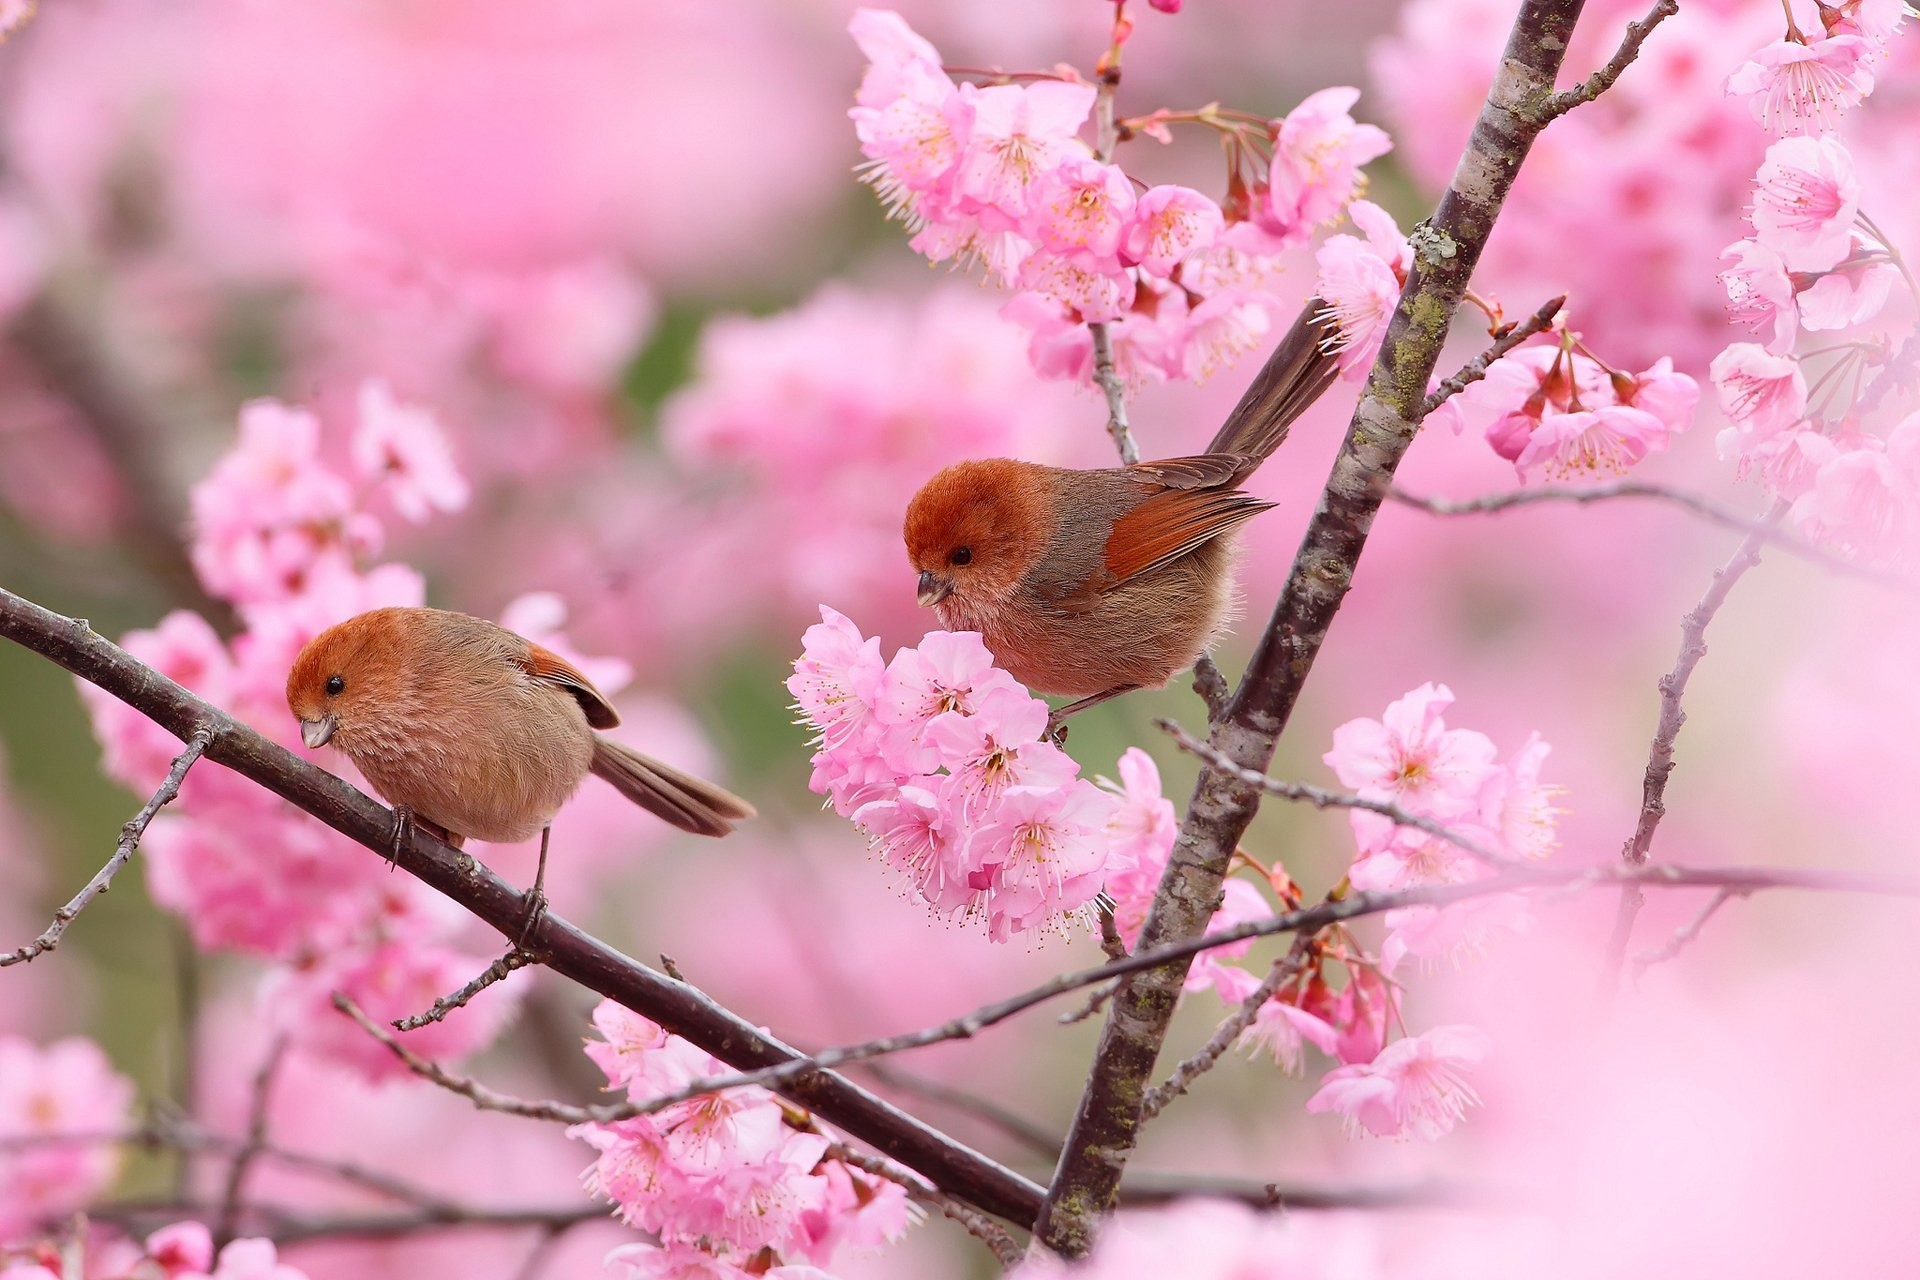 1920x1280 birds the pair tree supplies branches flower spring